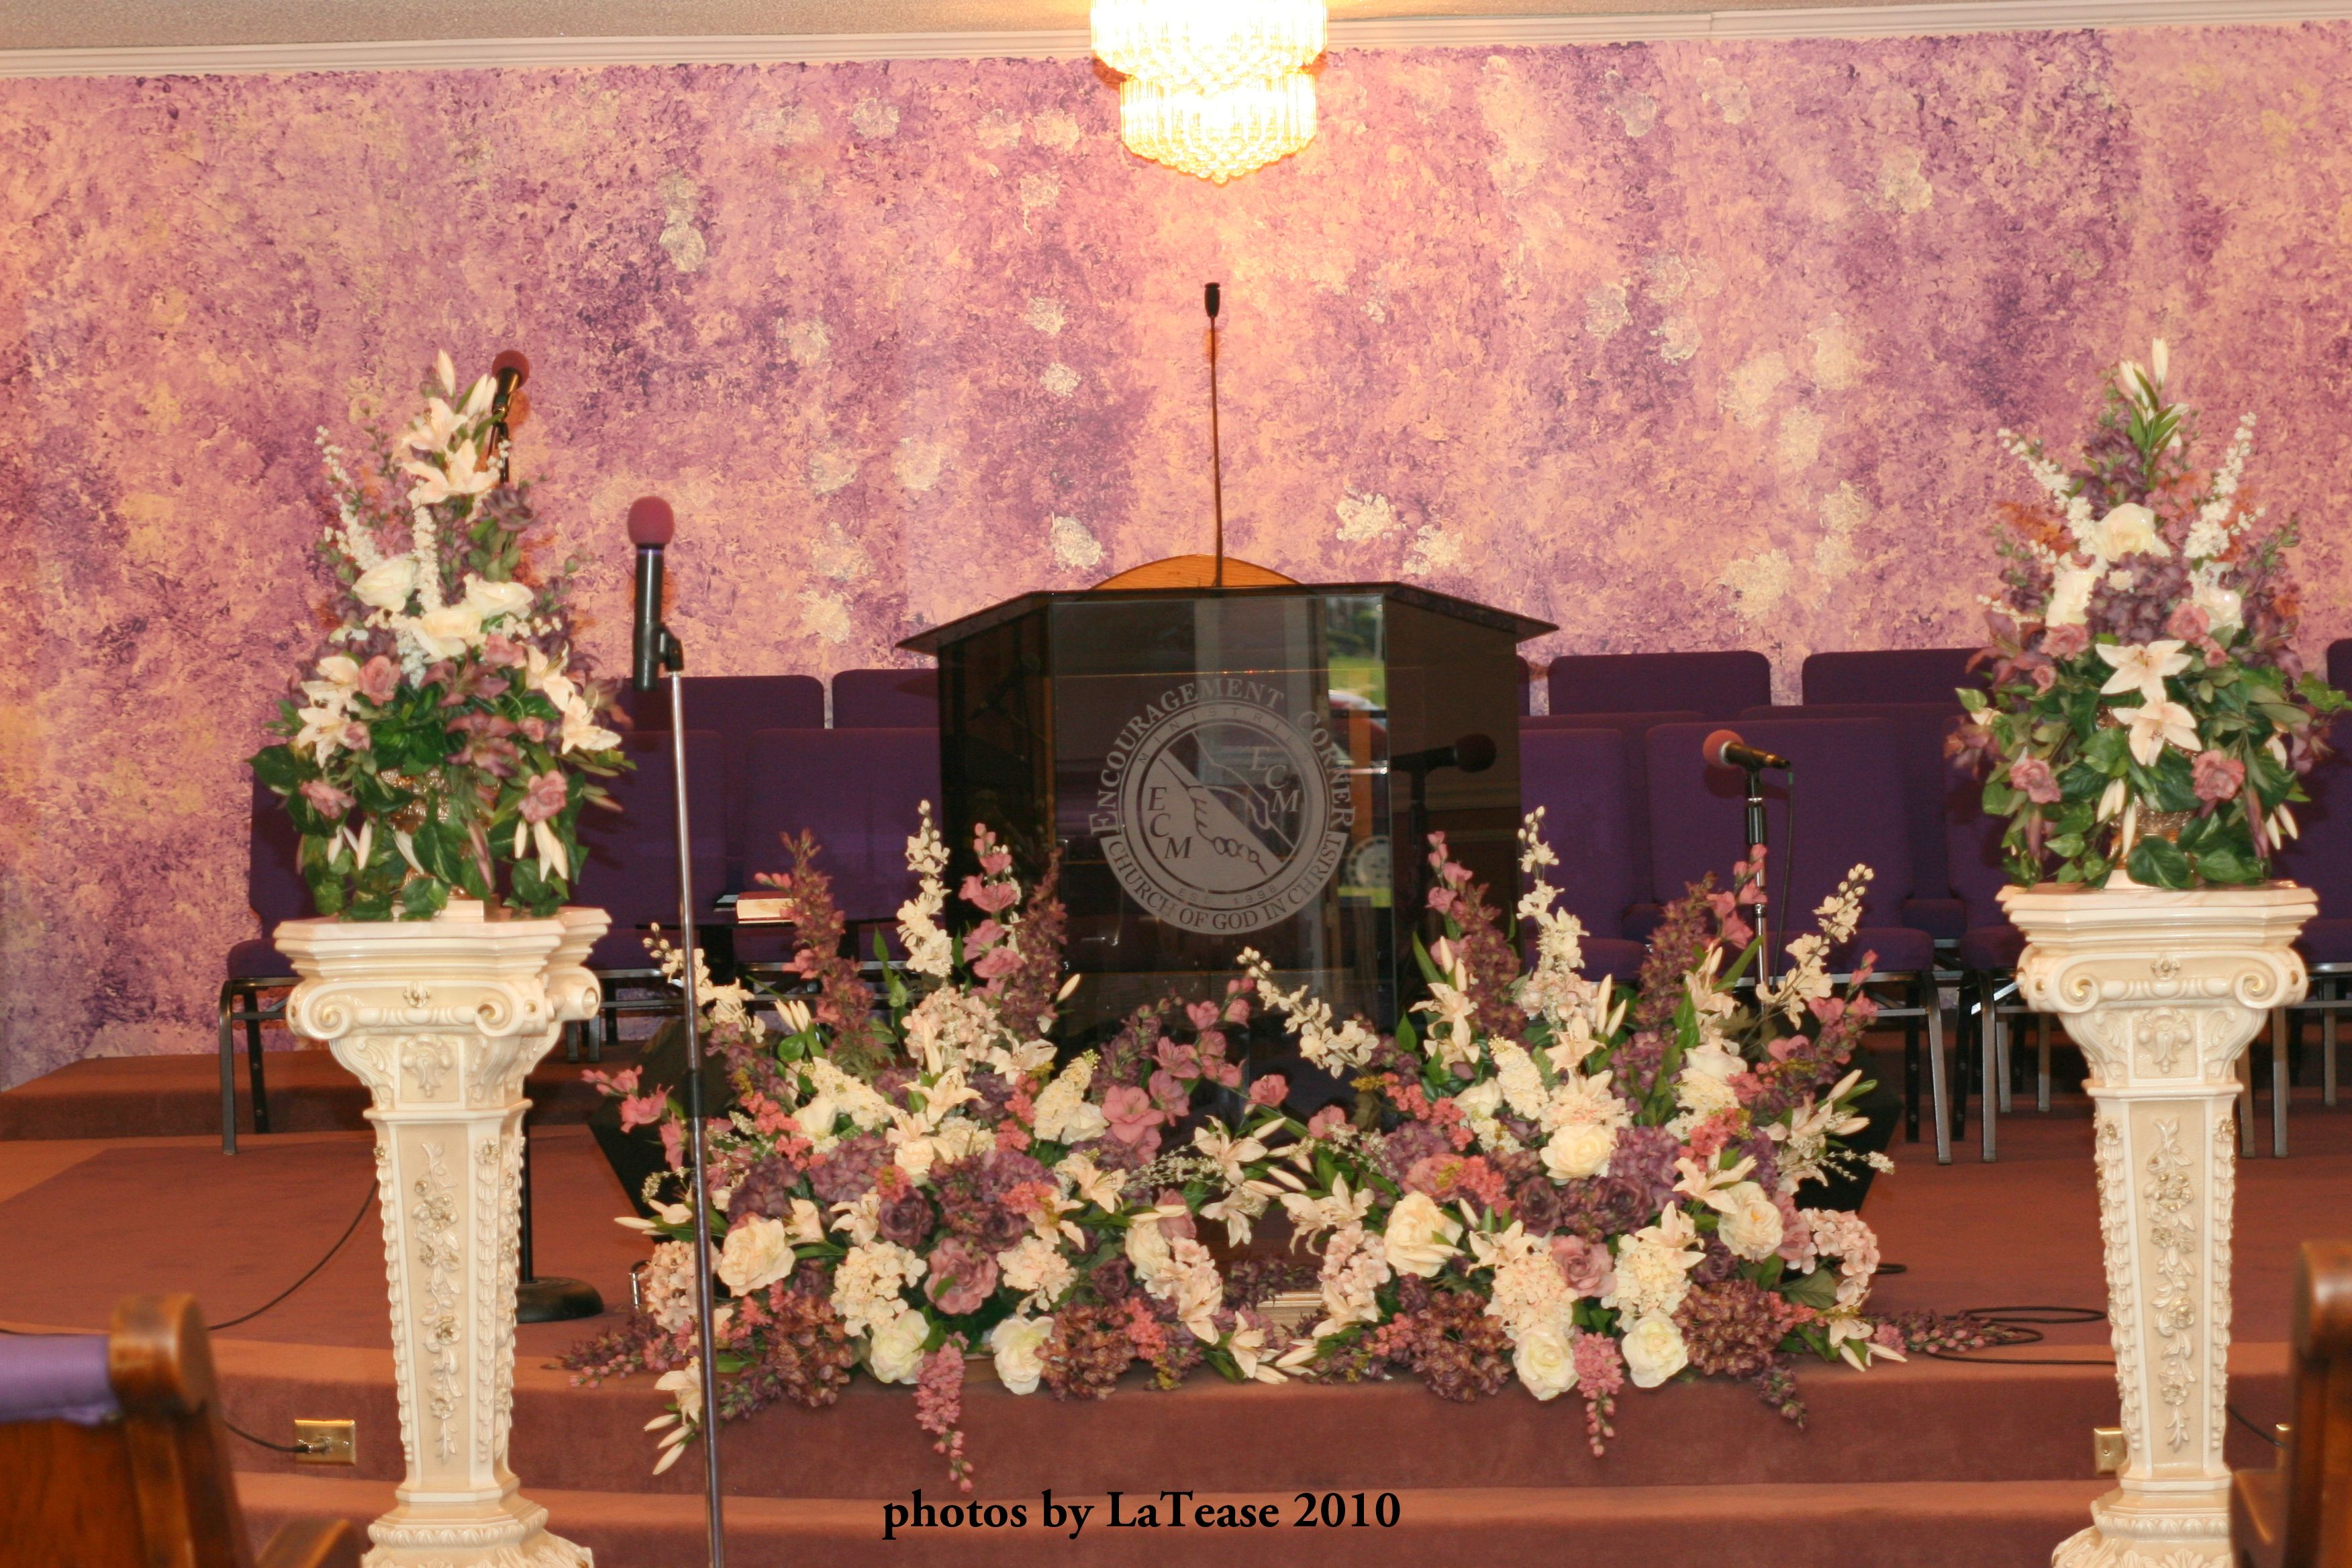 Will they get married at a church? The wedding planner has to orchestrate and plan the wedding with all the details. Timing is important too. Because the church can not be monopolized all day long. This wedding has to be timed, and things have to move smoothly.